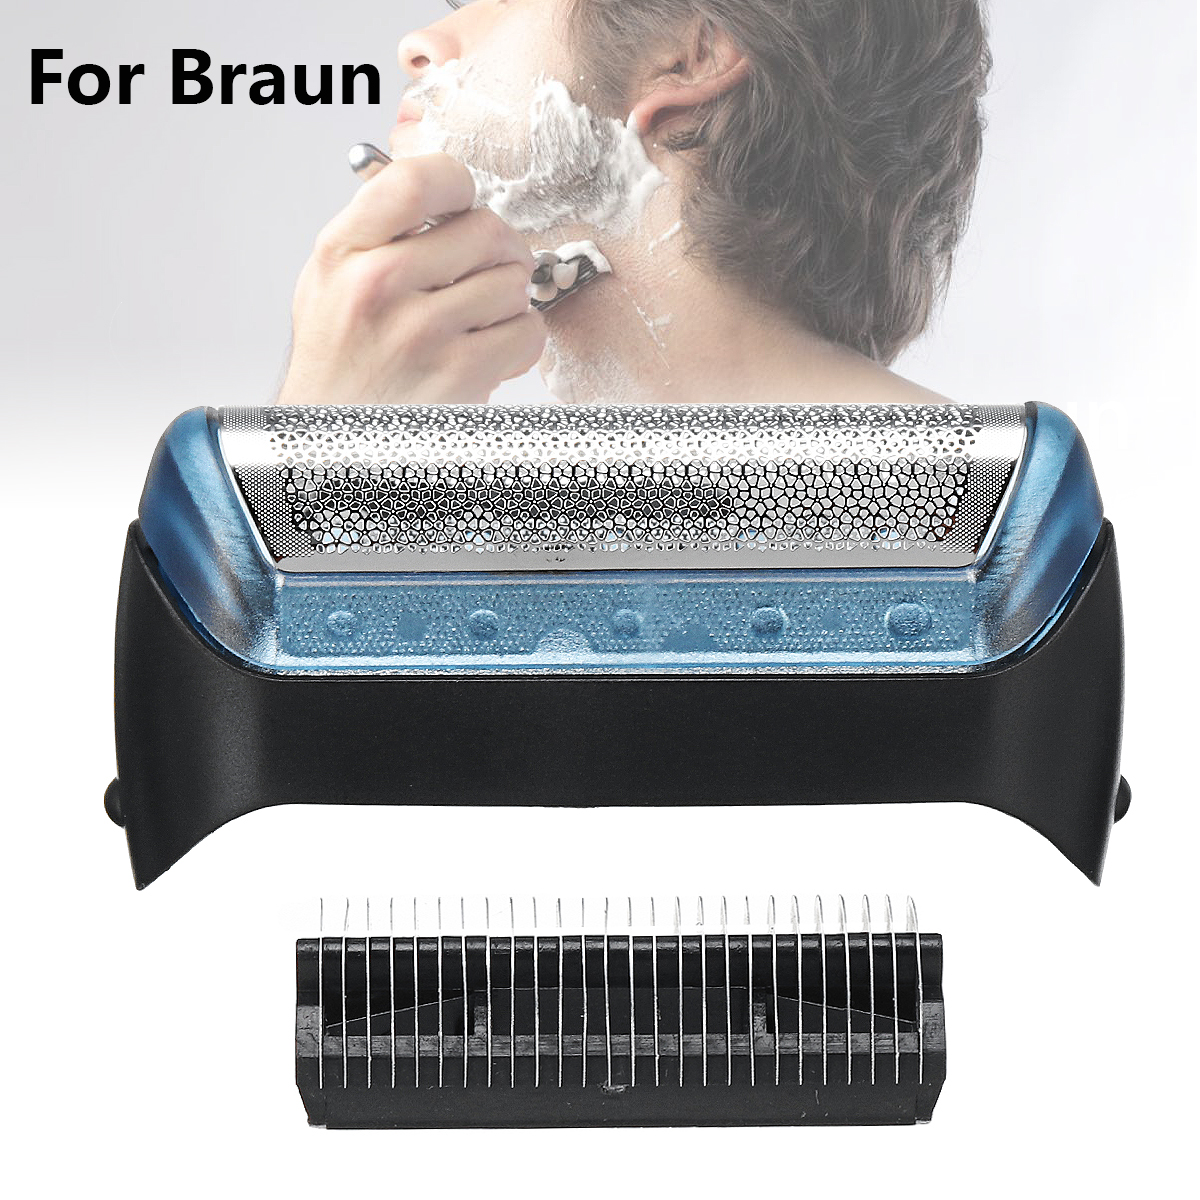 shaver-foil-blade-replacement-for-braun-10b-20b-20s-personal-care-parts-2-choice-cutter-blade-shaver-replacement-foil-best-price